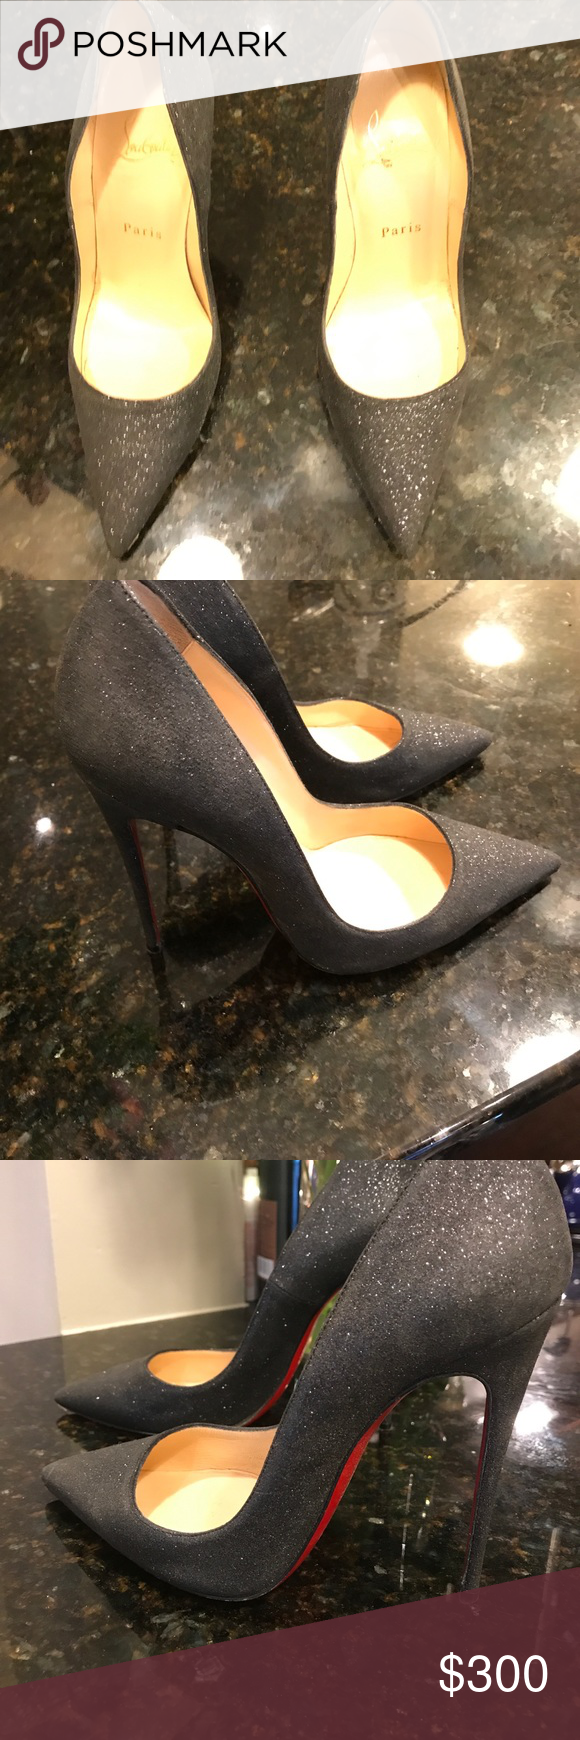 Christian Louboutin Heels Size 6 Christian Louboutin heels. Worn a few times but in good condition. As typical with Christian Louboutin's the red sole starts to wears off after wearing even once. Christian Louboutin Shoes Heels